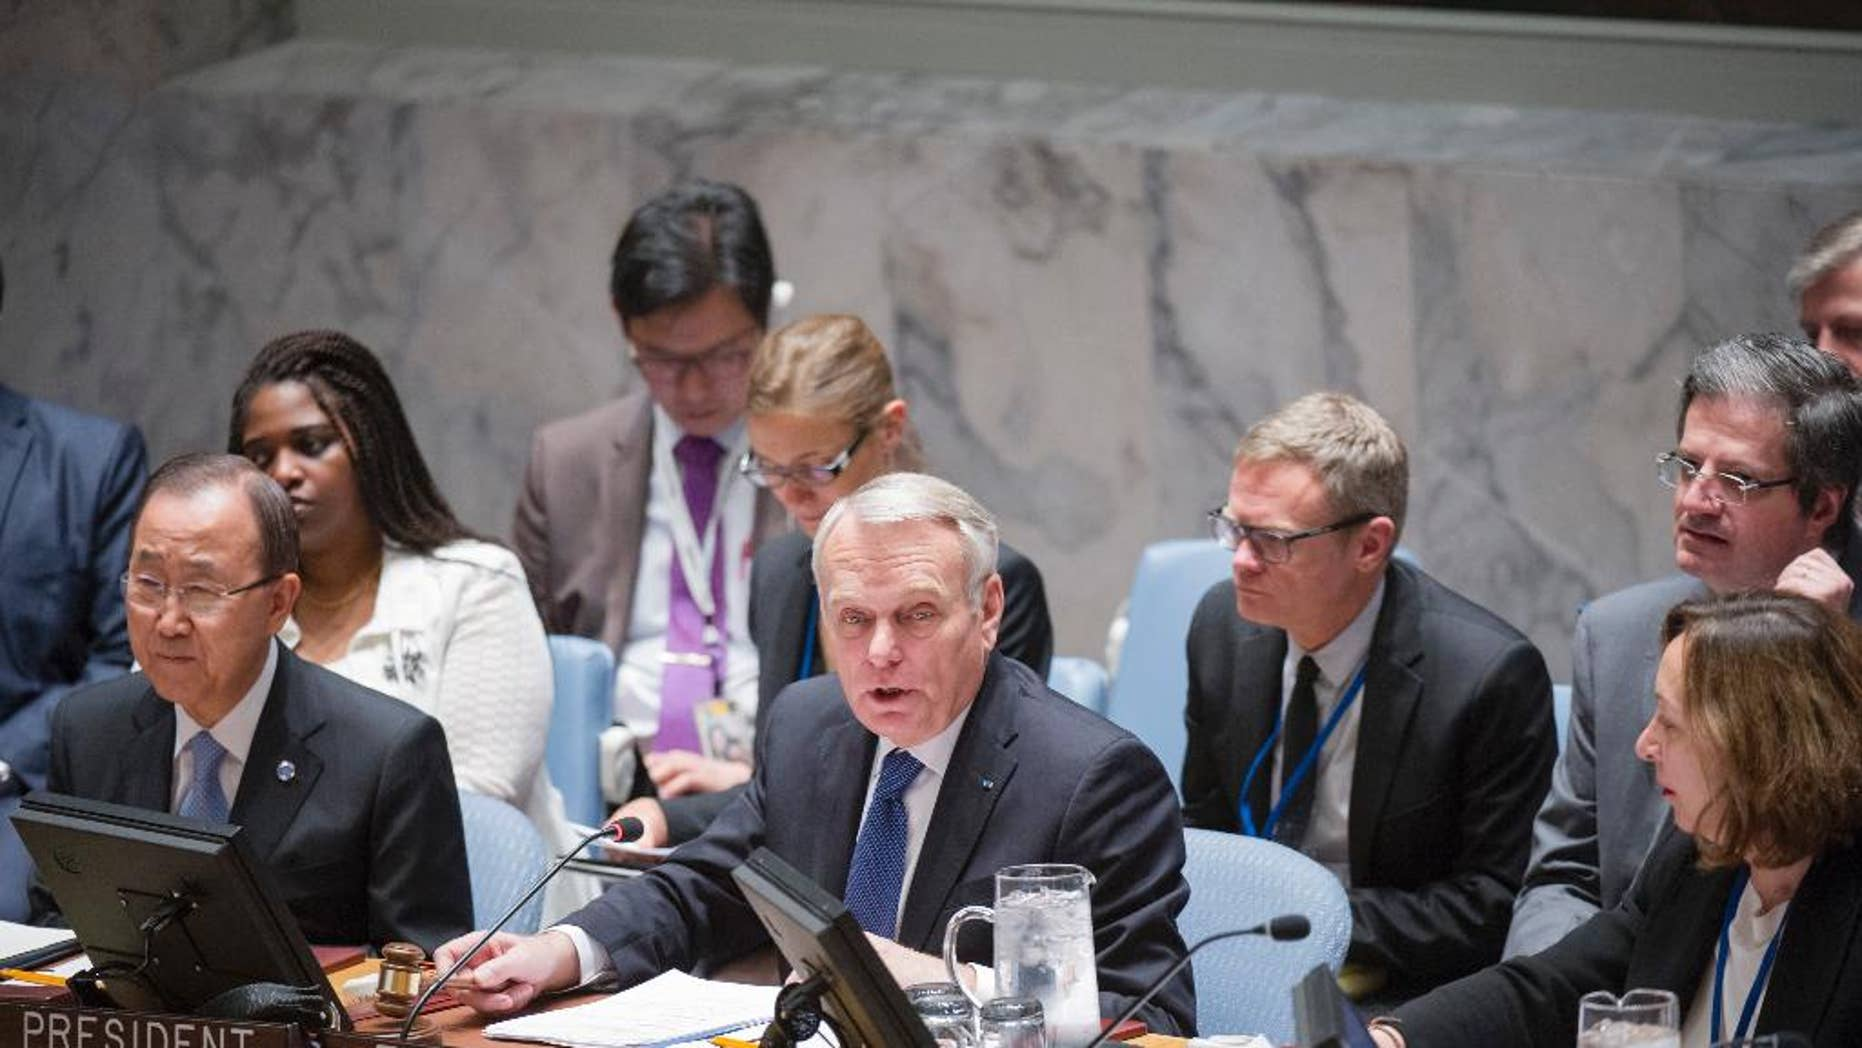 """In this photo provided by the United Nations, Jean-Marc Ayrault, center, Minister for Foreign Affairs and International Development of France, addresses the United Nations Security Council, Friday, June 10, 2016 at United Nations headquarters. U.N. Secretary-General Ban Ki-moon is seated to his left and Hasmik Egian, Acting Director of the Security Council Affairs Division, is to the right. Ayrault addressed a small group of reporters on Friday, warning that Israel's ban on Palestinians entering its territory following the """"abominable"""" attack on a popular cafe in Tel Aviv could escalate violence instead of focus attention on the need to pursue peace. (Rick Bajornas/The United Nations via AP)"""